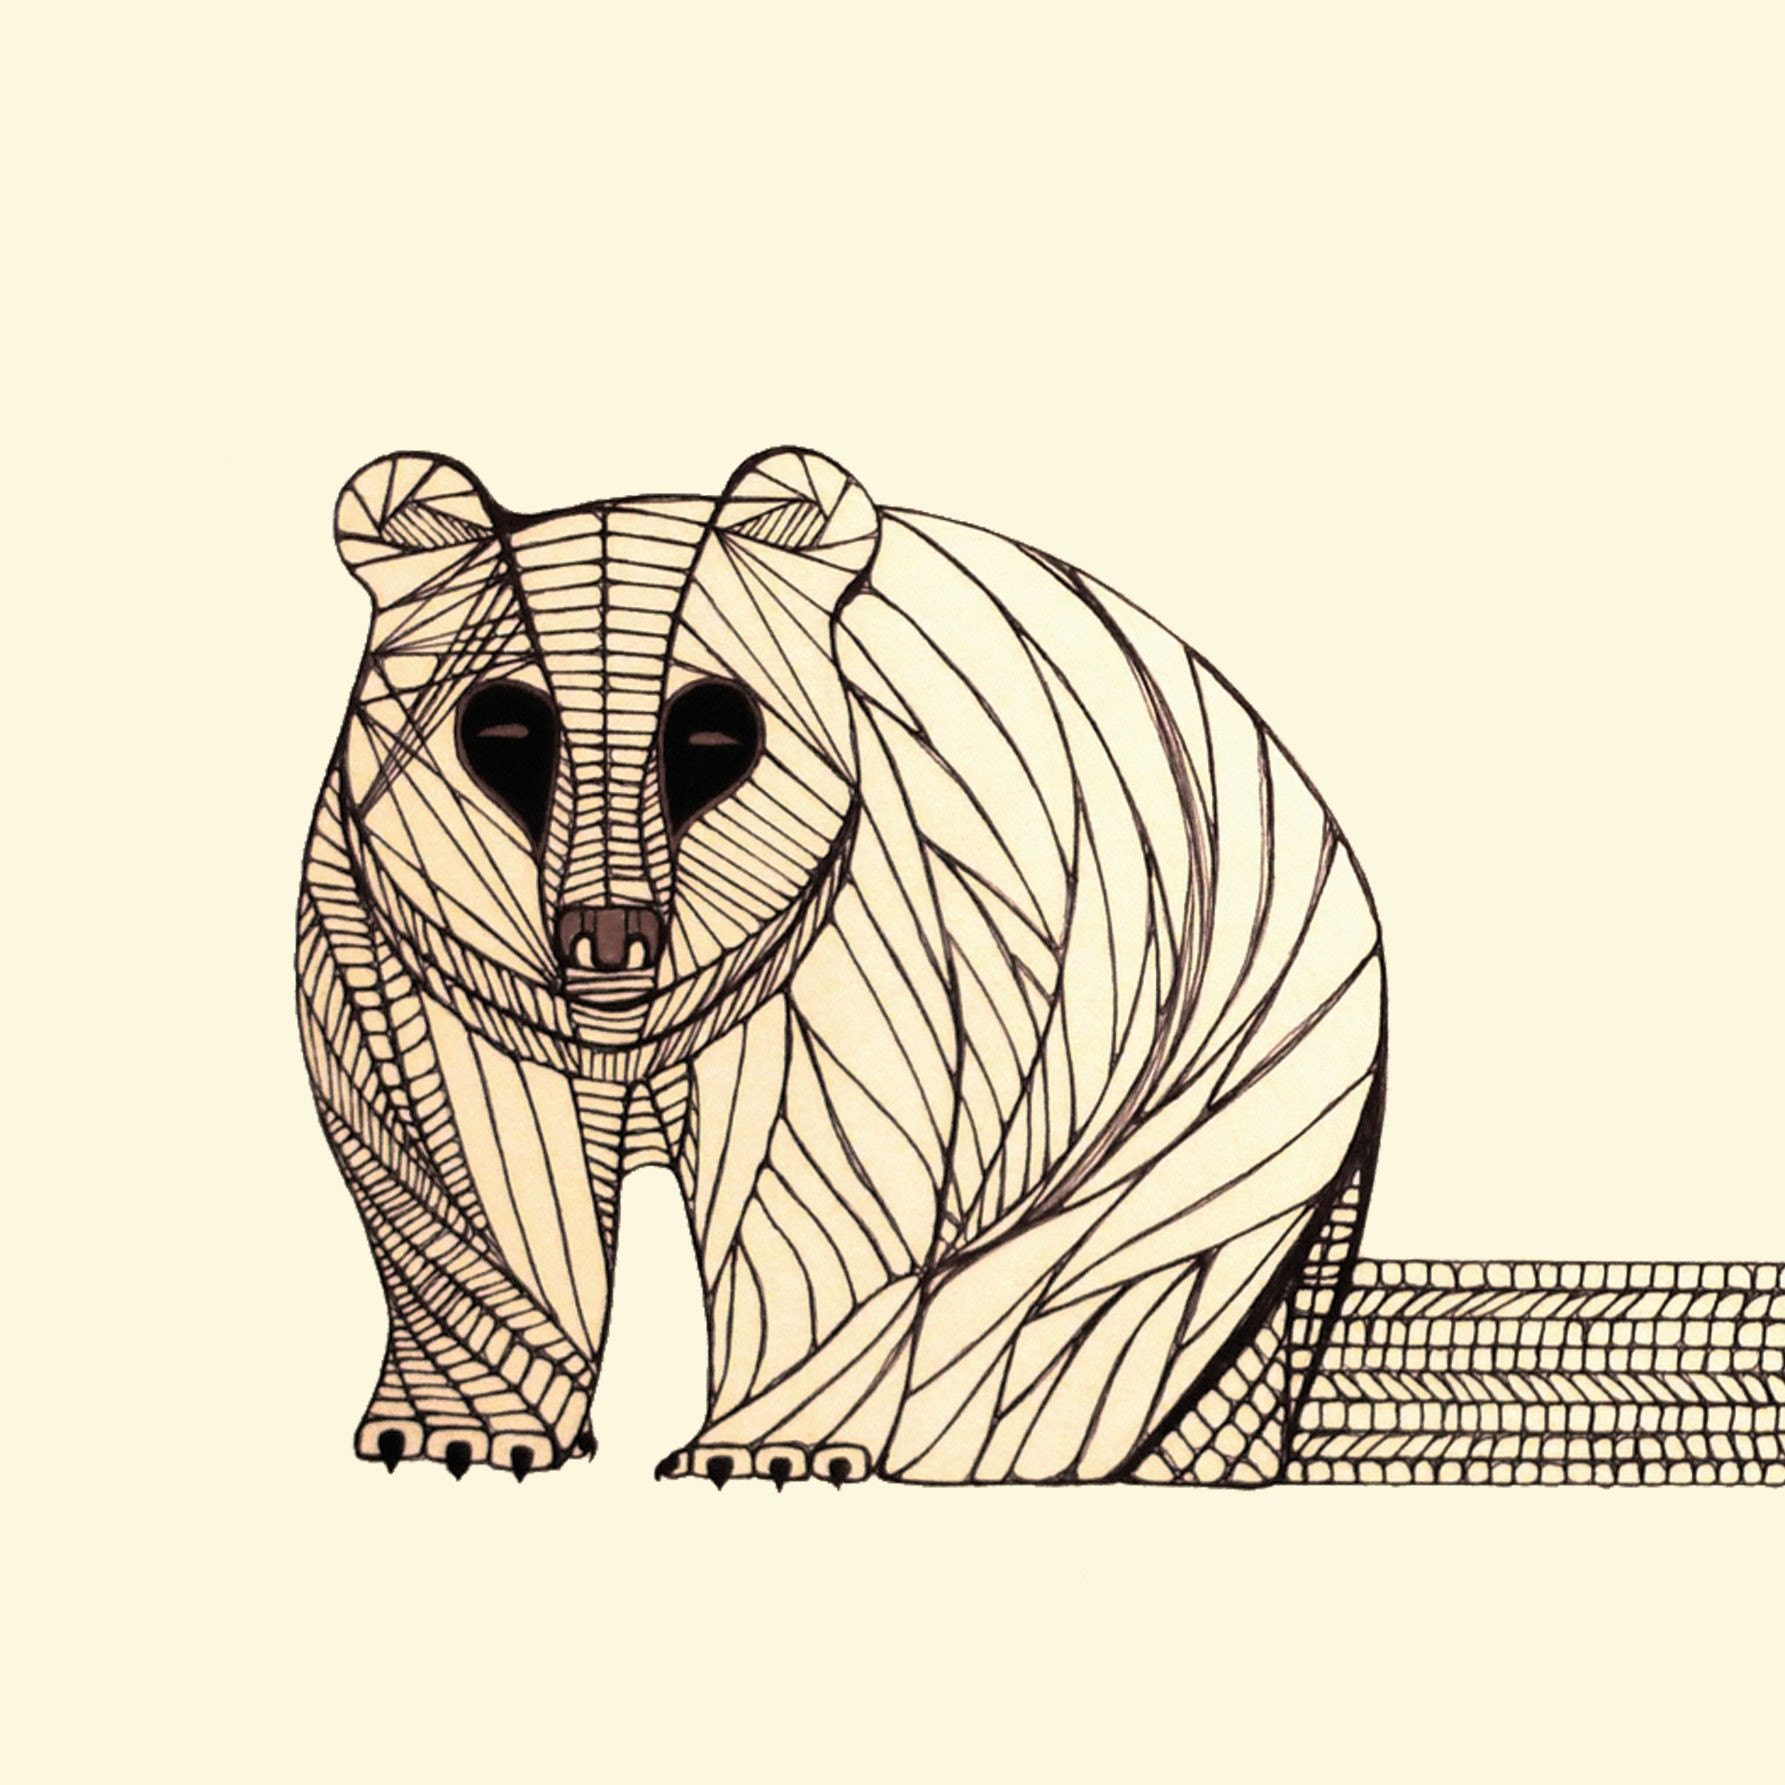 Line Drawing Photo : Bear art print native animal line drawing by thailan when